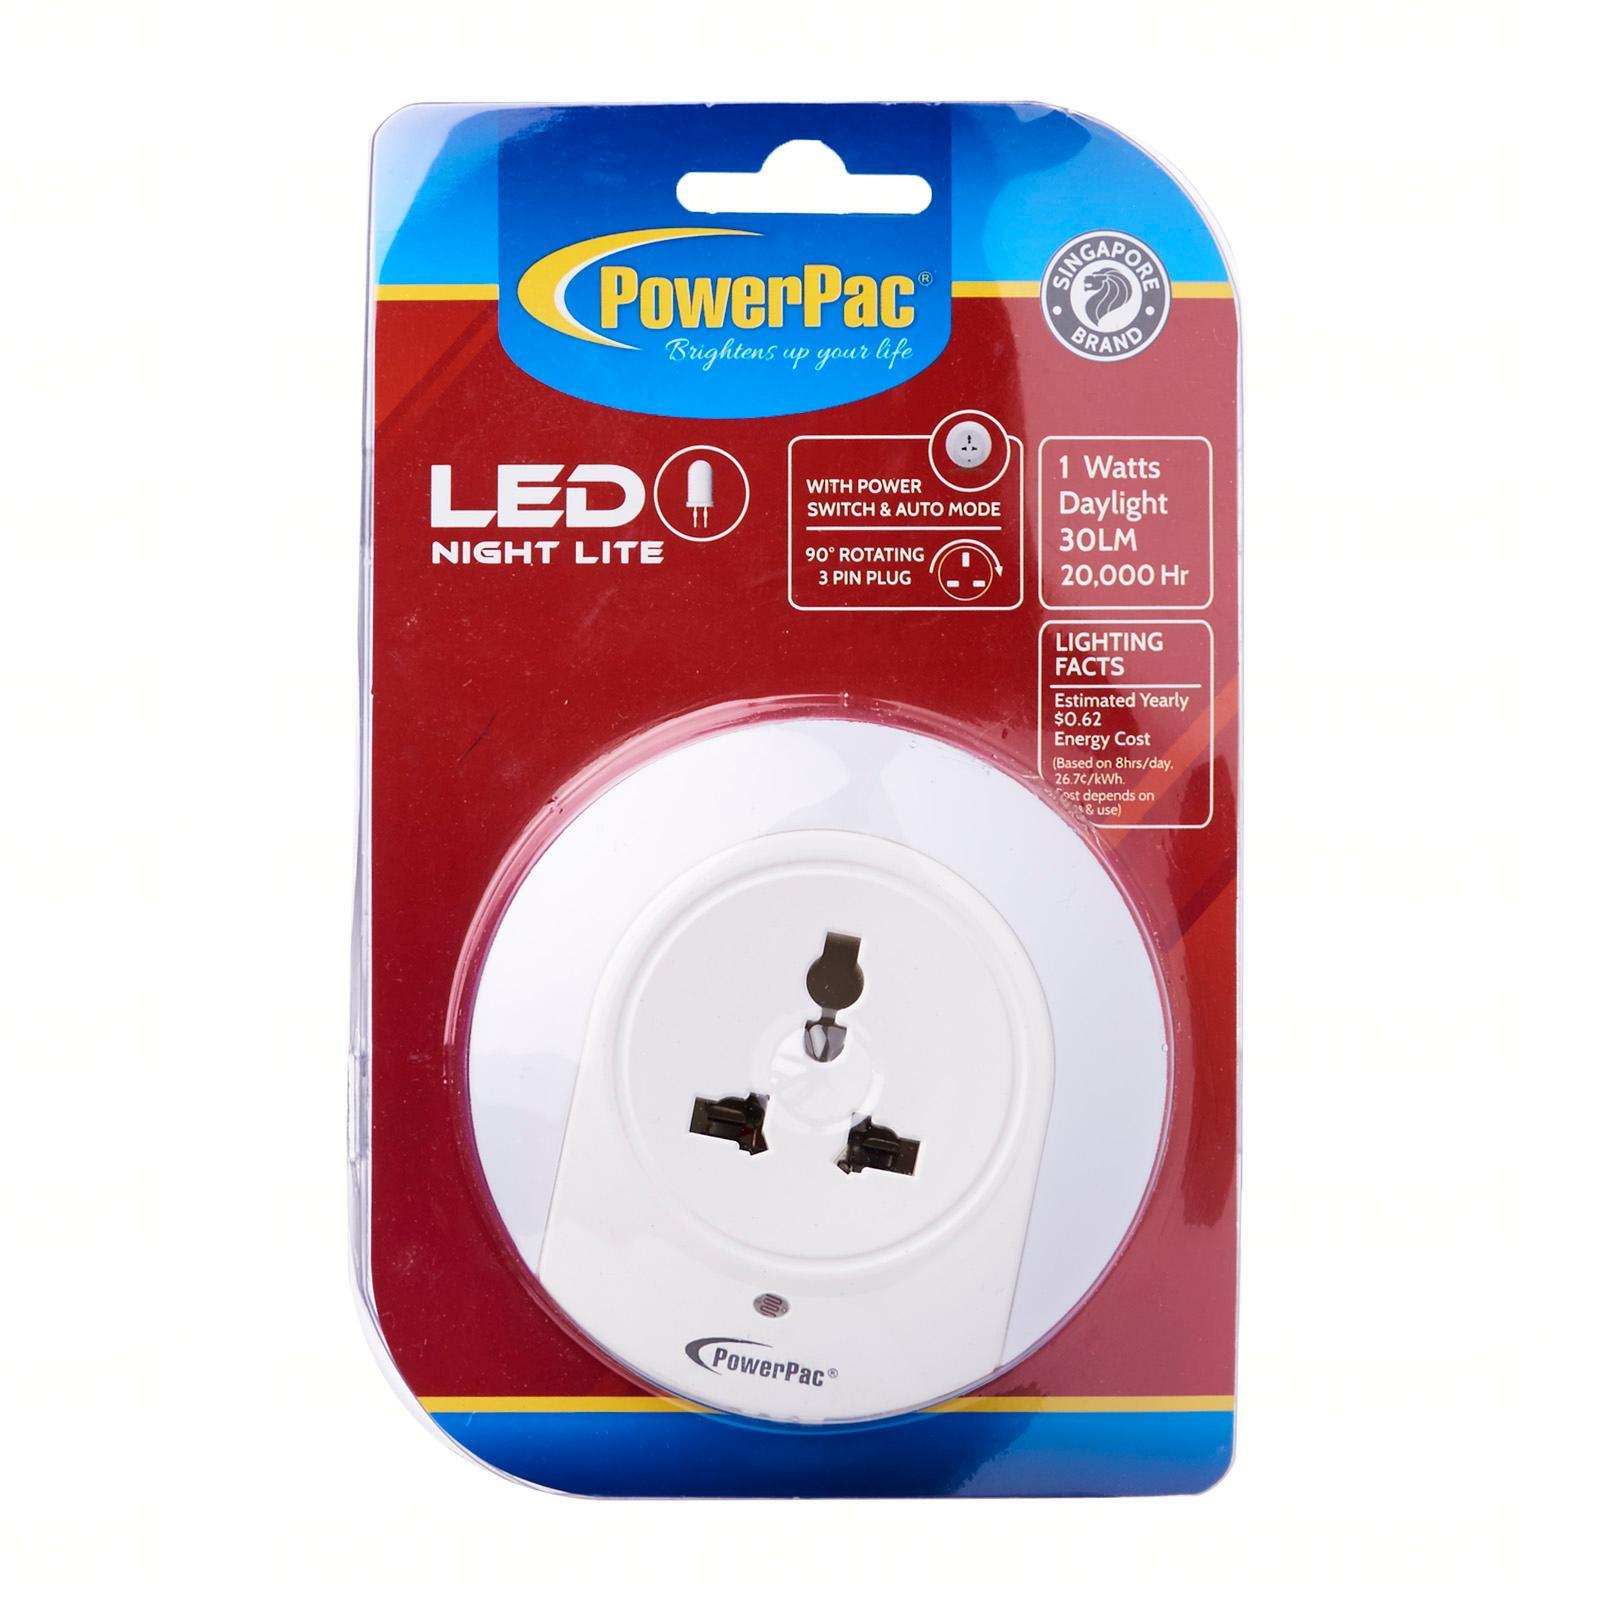 PowerPac LED Night Light With Power Switch And Auto Mode (MC72)